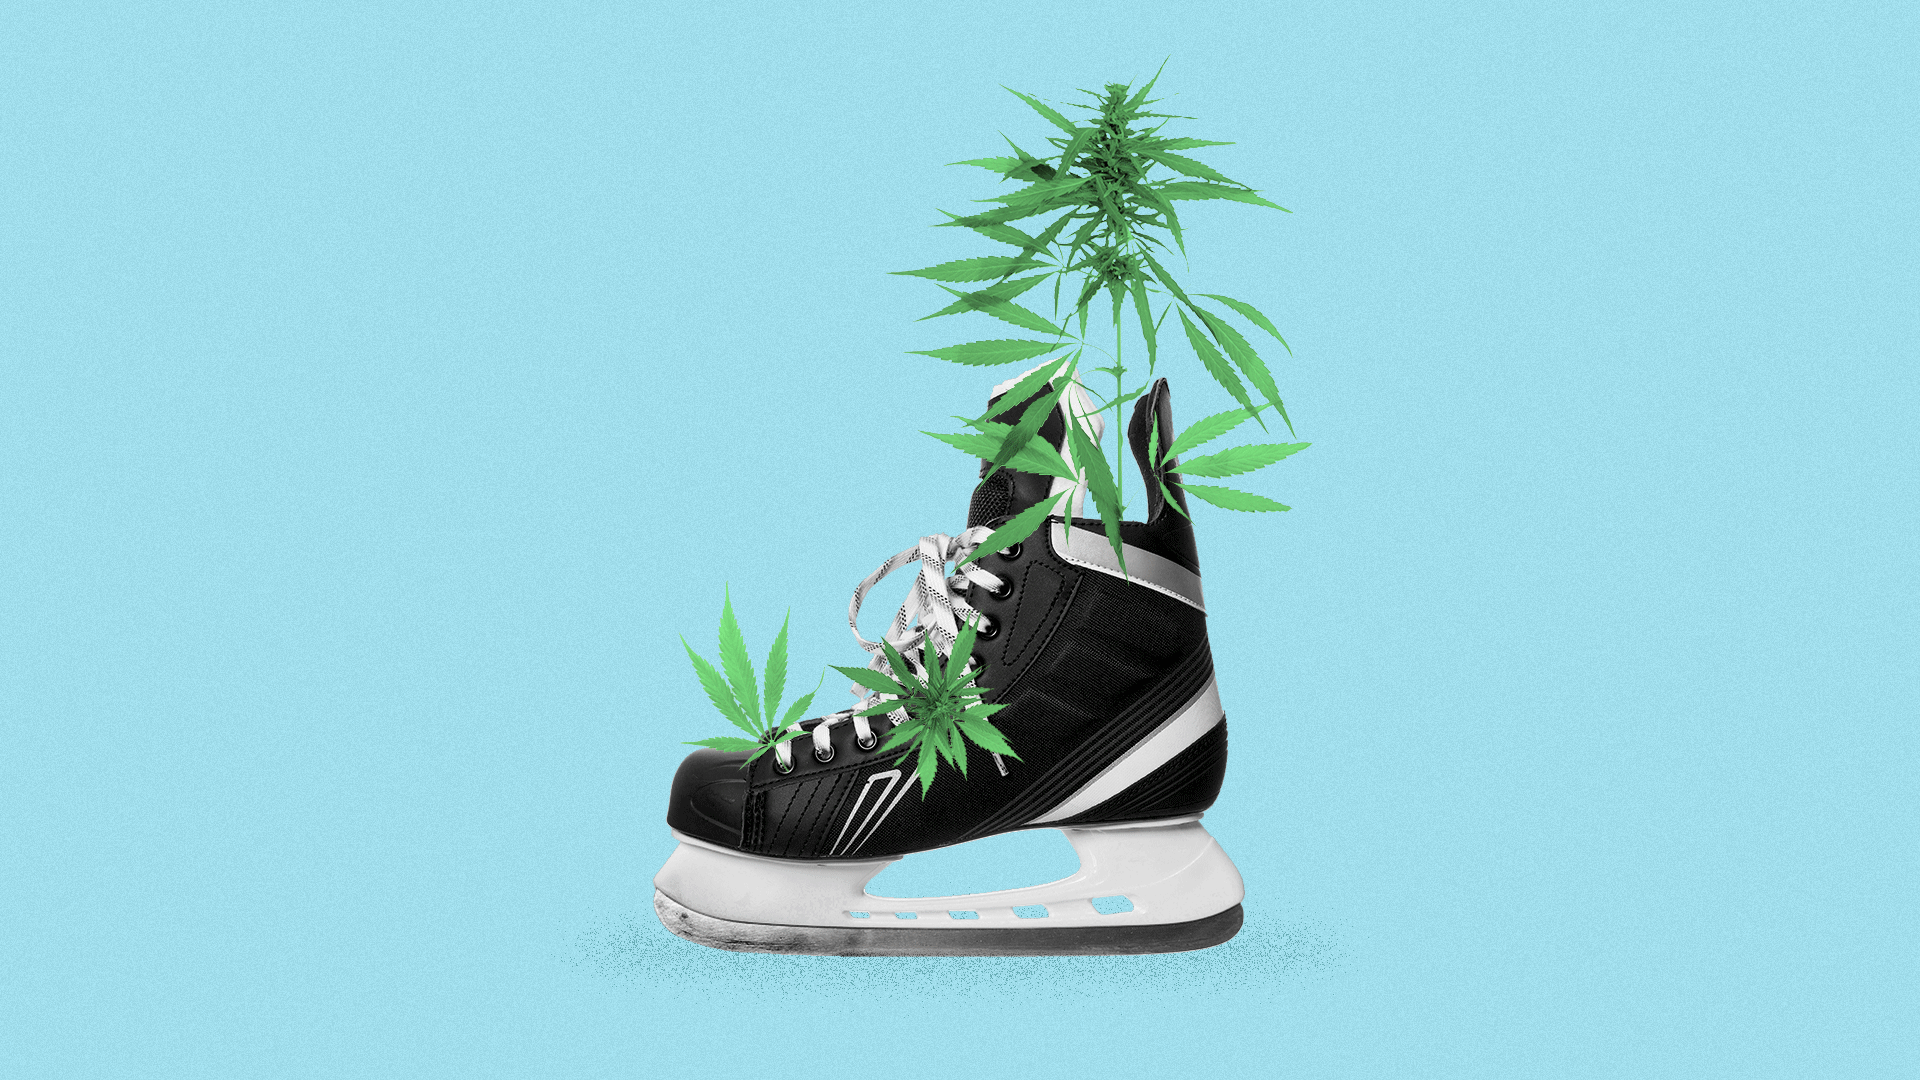 Illustration of a hockey skate with marijuana growing out of it.